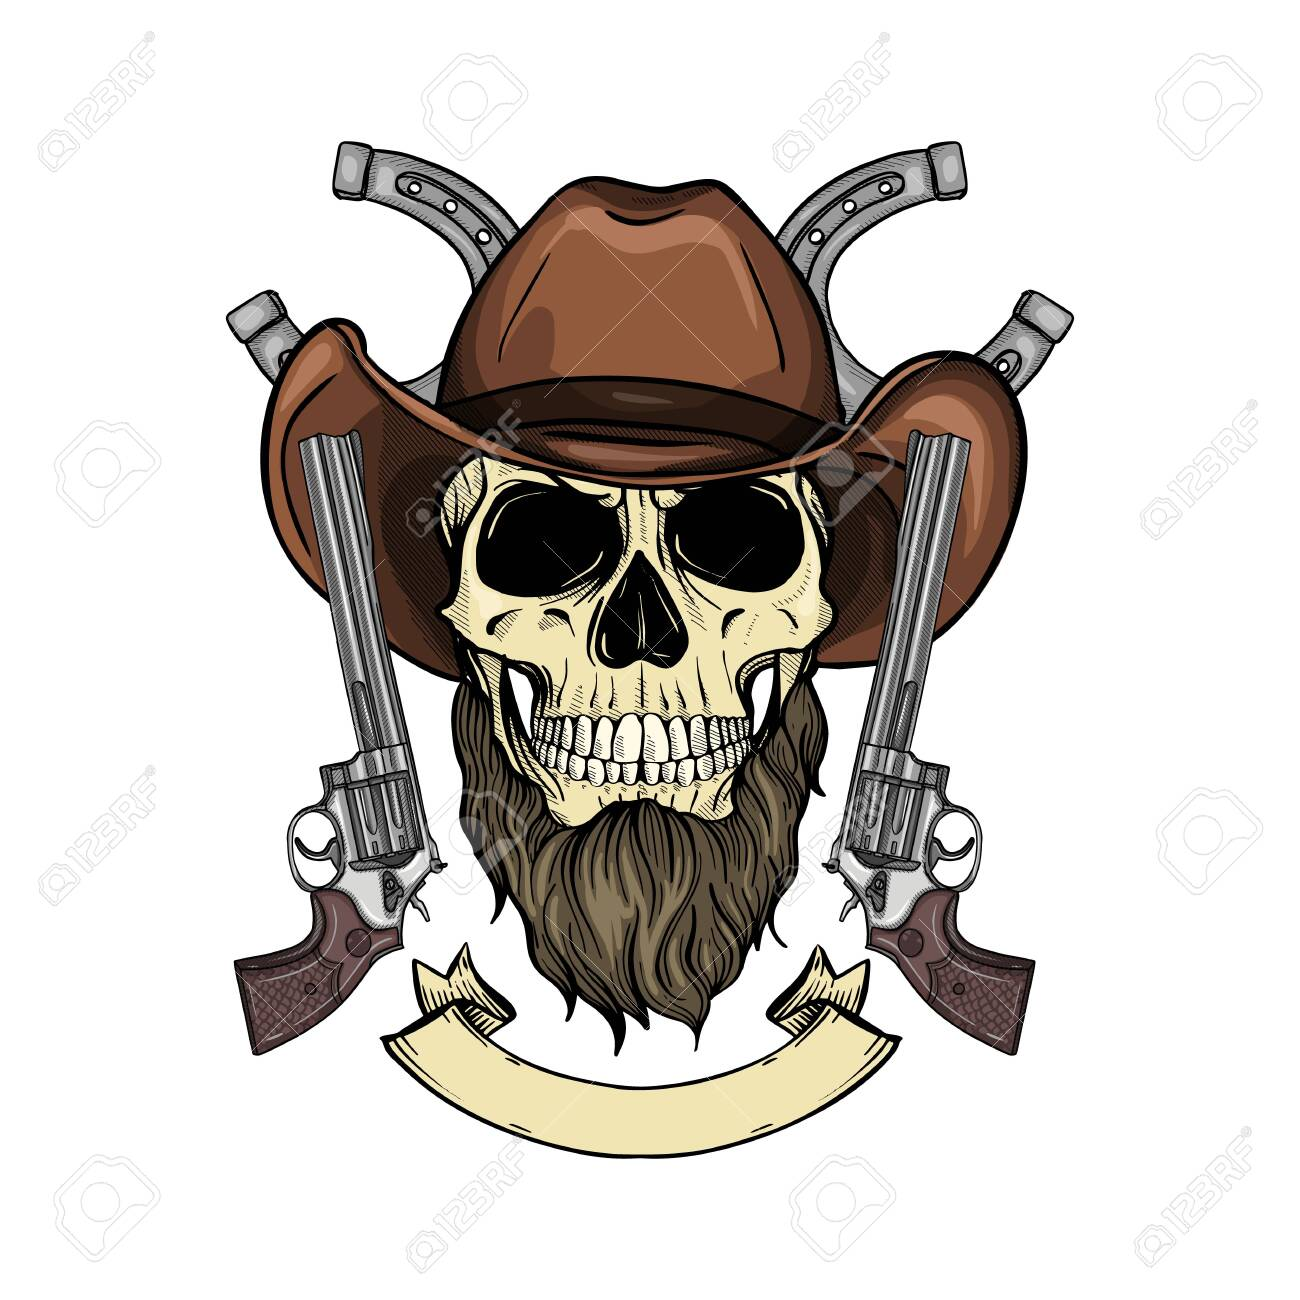 Hand drawn sketch, color skull with cowboy hat, revolver and beard - 121685276